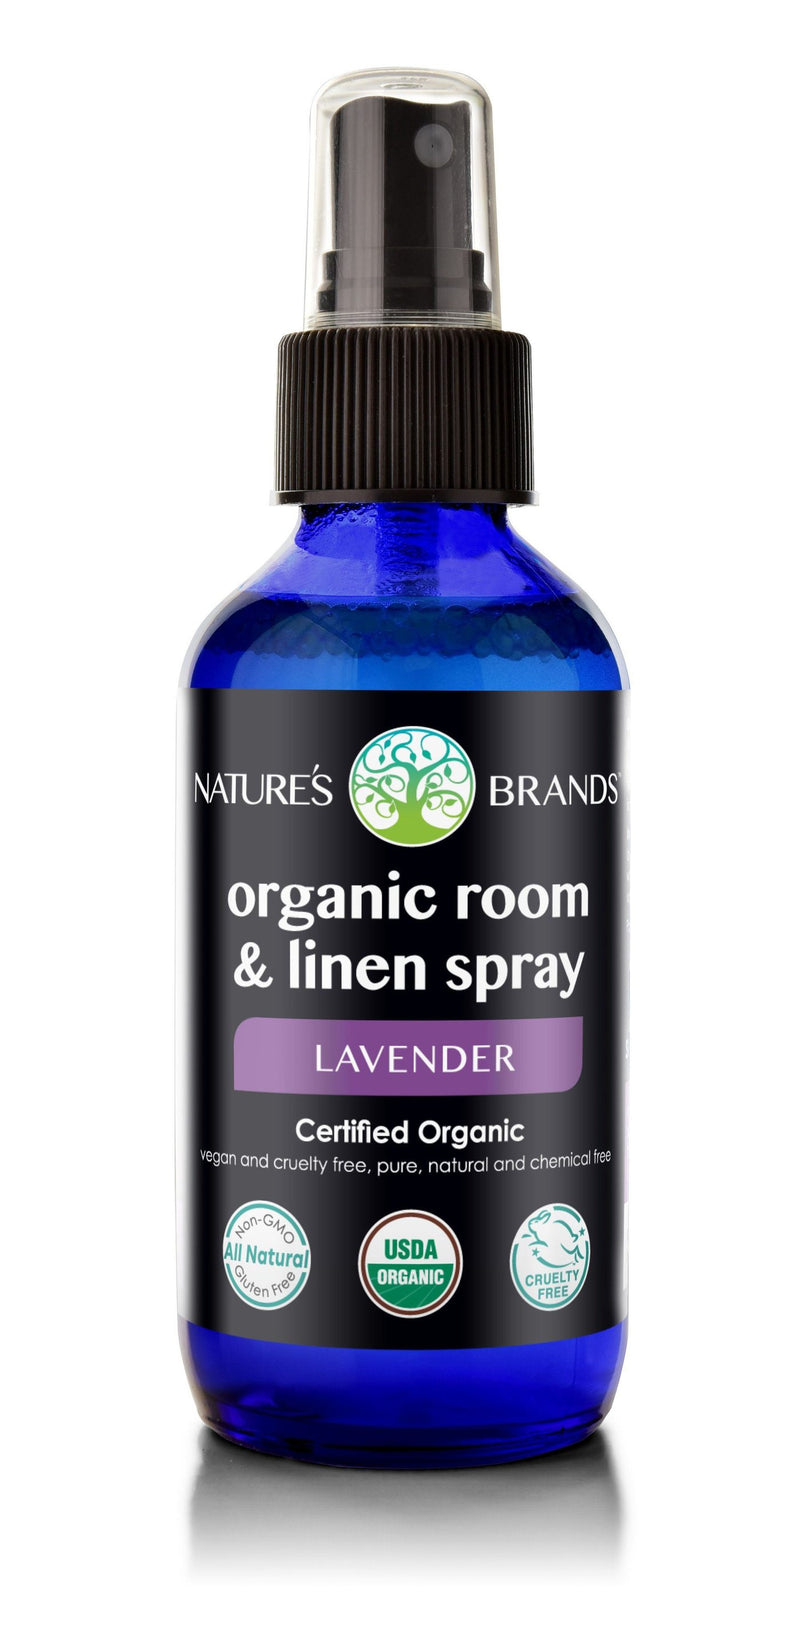 Herbal Choice Mari Organic Room & Linen Spray - Herbal Choice Mari Organic Room & Linen Spray - Herbal Choice Mari Organic Room & Linen Spray